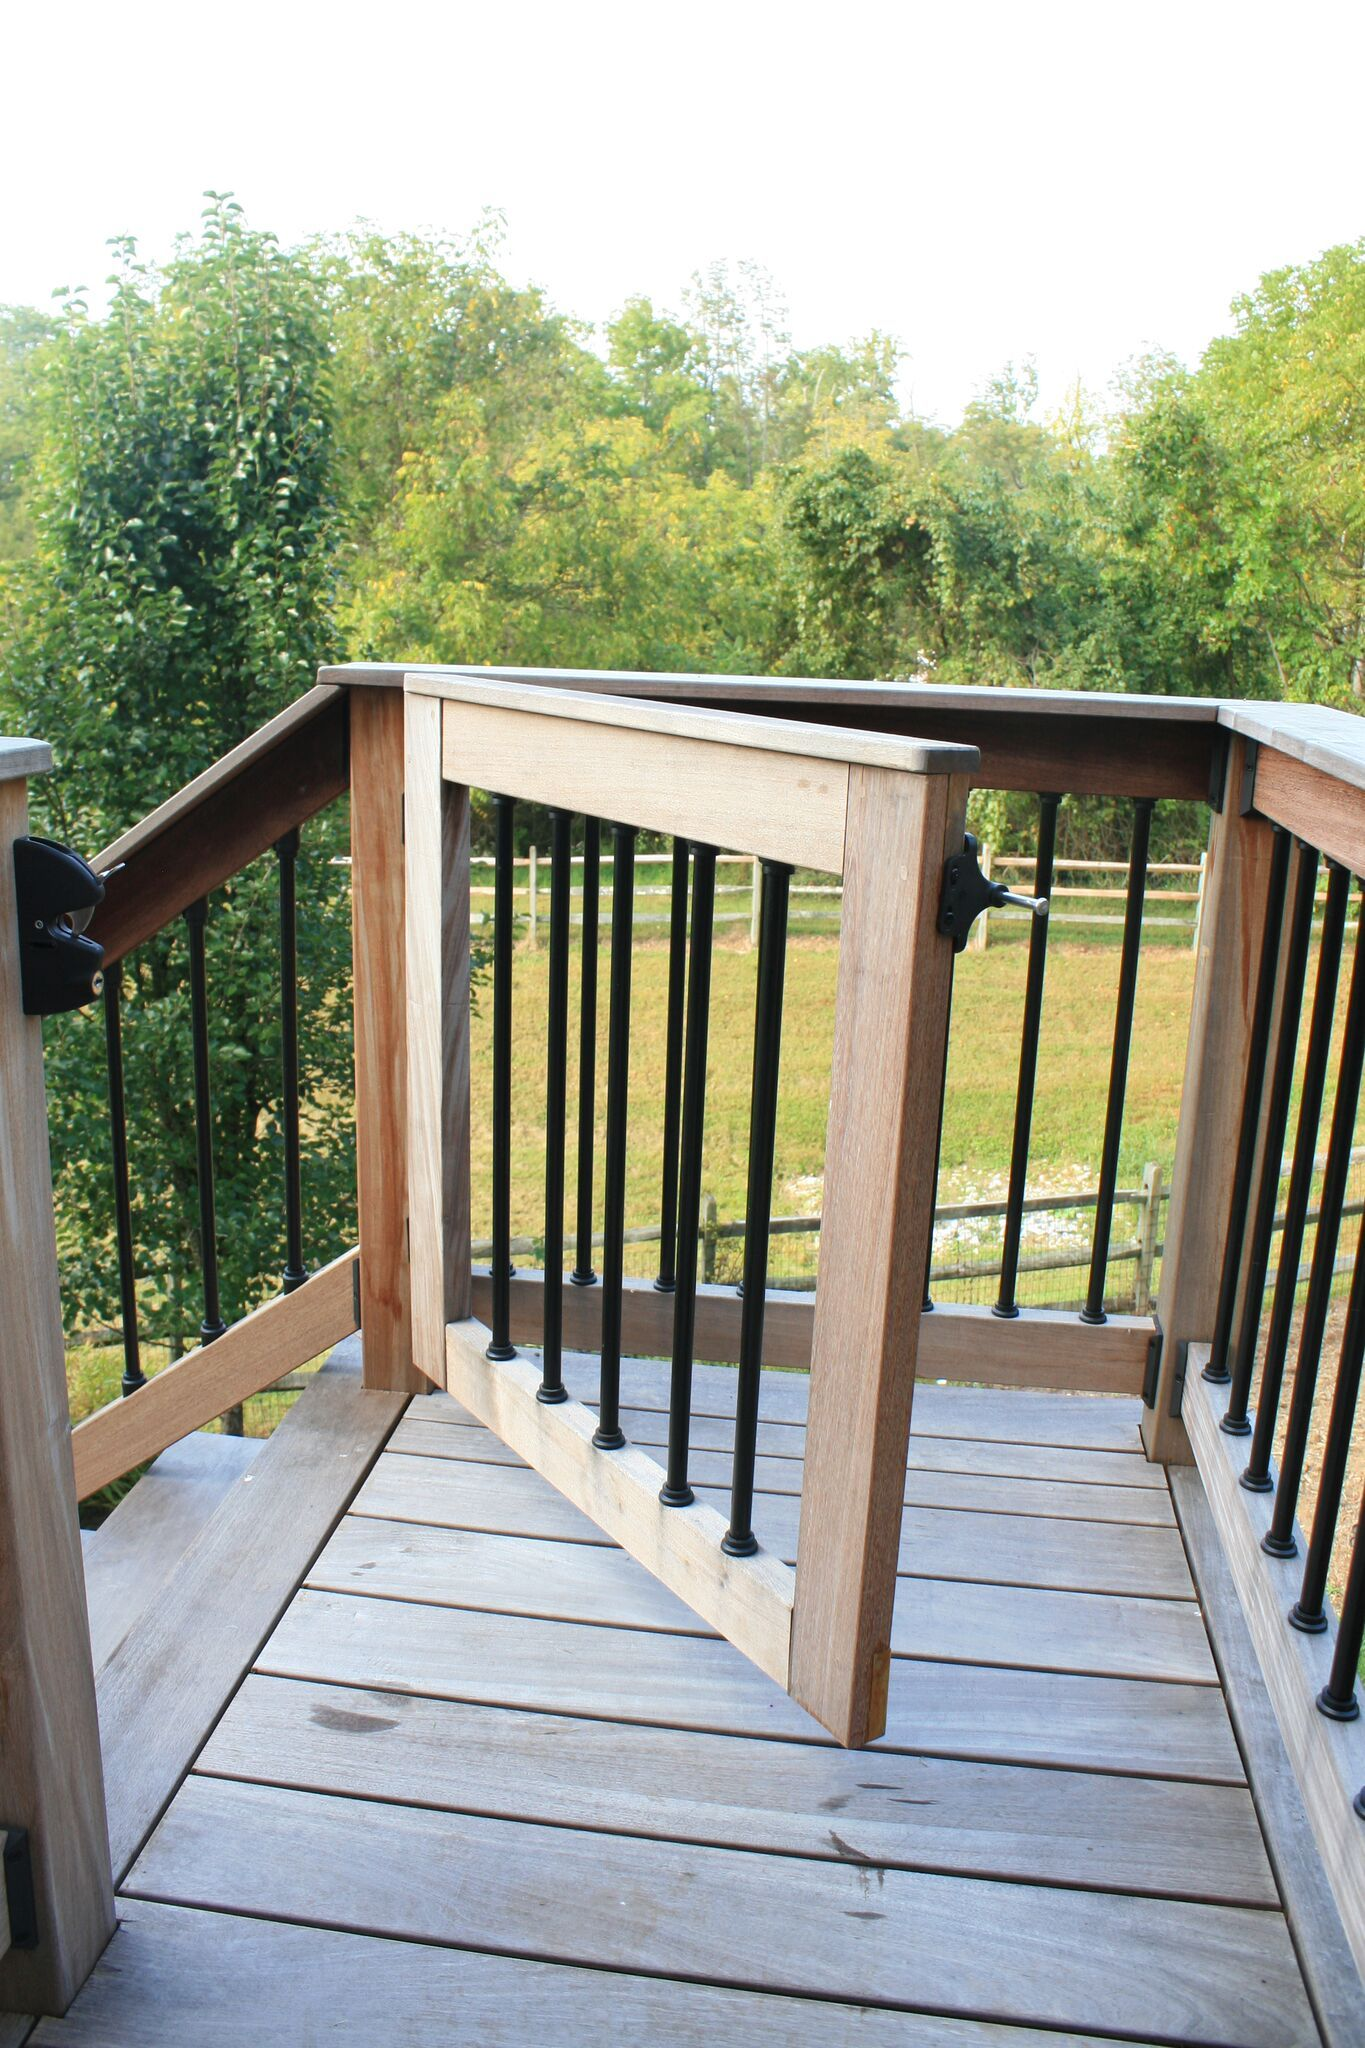 Got kids got pets if youre wondering if its possible to install a gate at the top of a potentially dangerous staircase weve got you covered our lancaster county deck builders can help to secure your new deck baanklon Choice Image